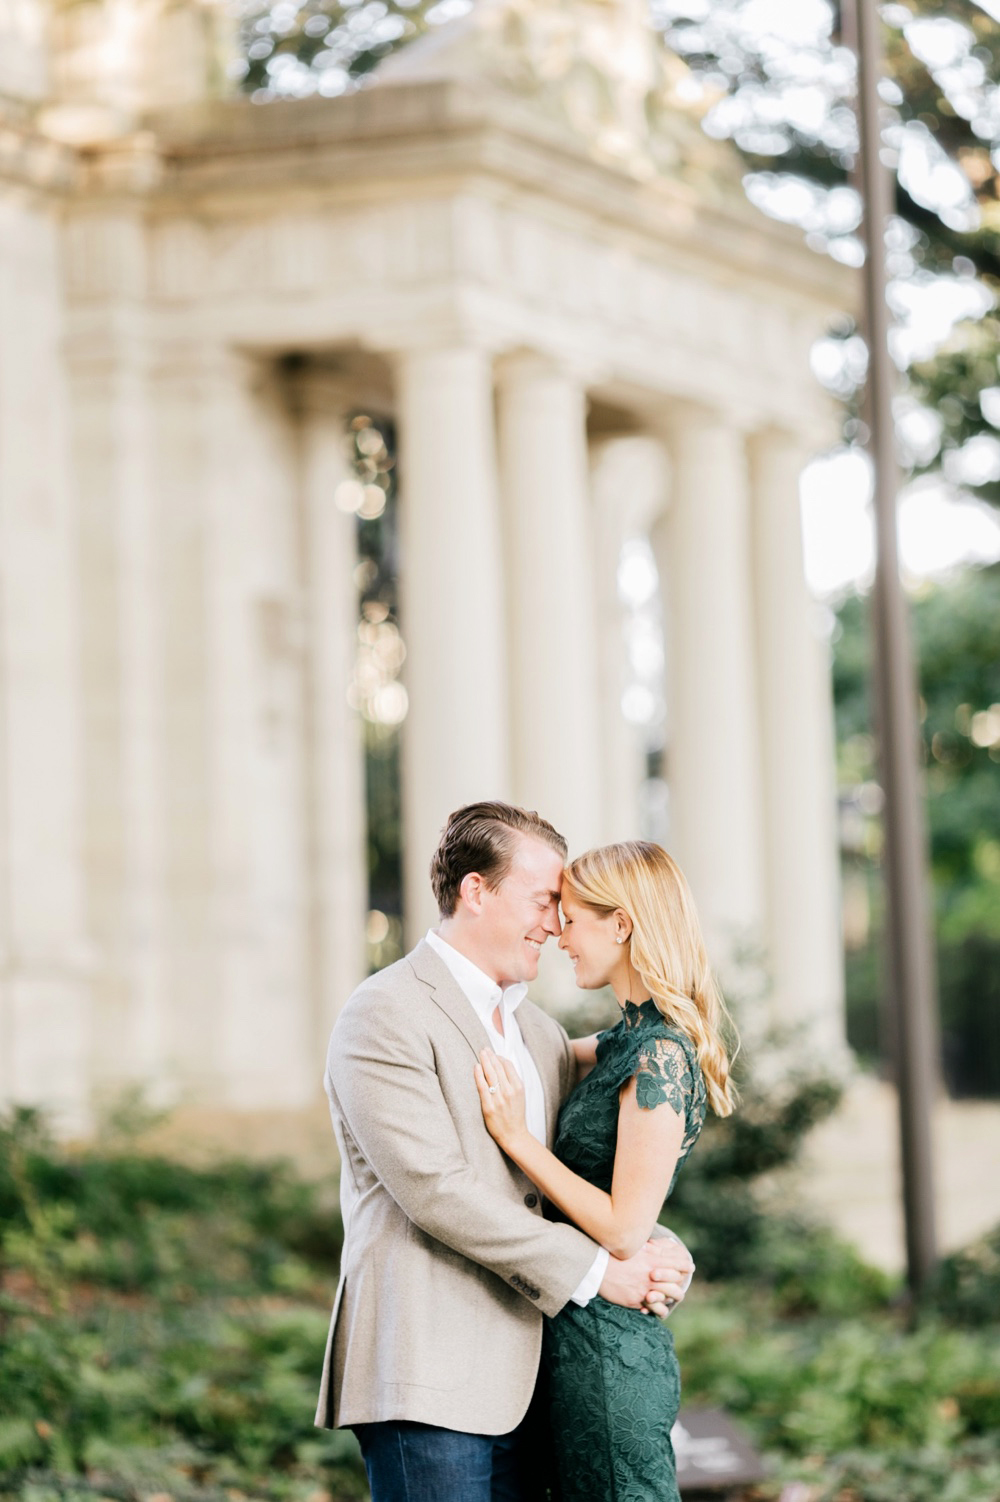 17 Katie&DrewEngagement 127 Rodin Museum Engagement Philadelphia Engagement Philadelphia Wedding Photographer Fine Art Wedding Photographer Light And Airy